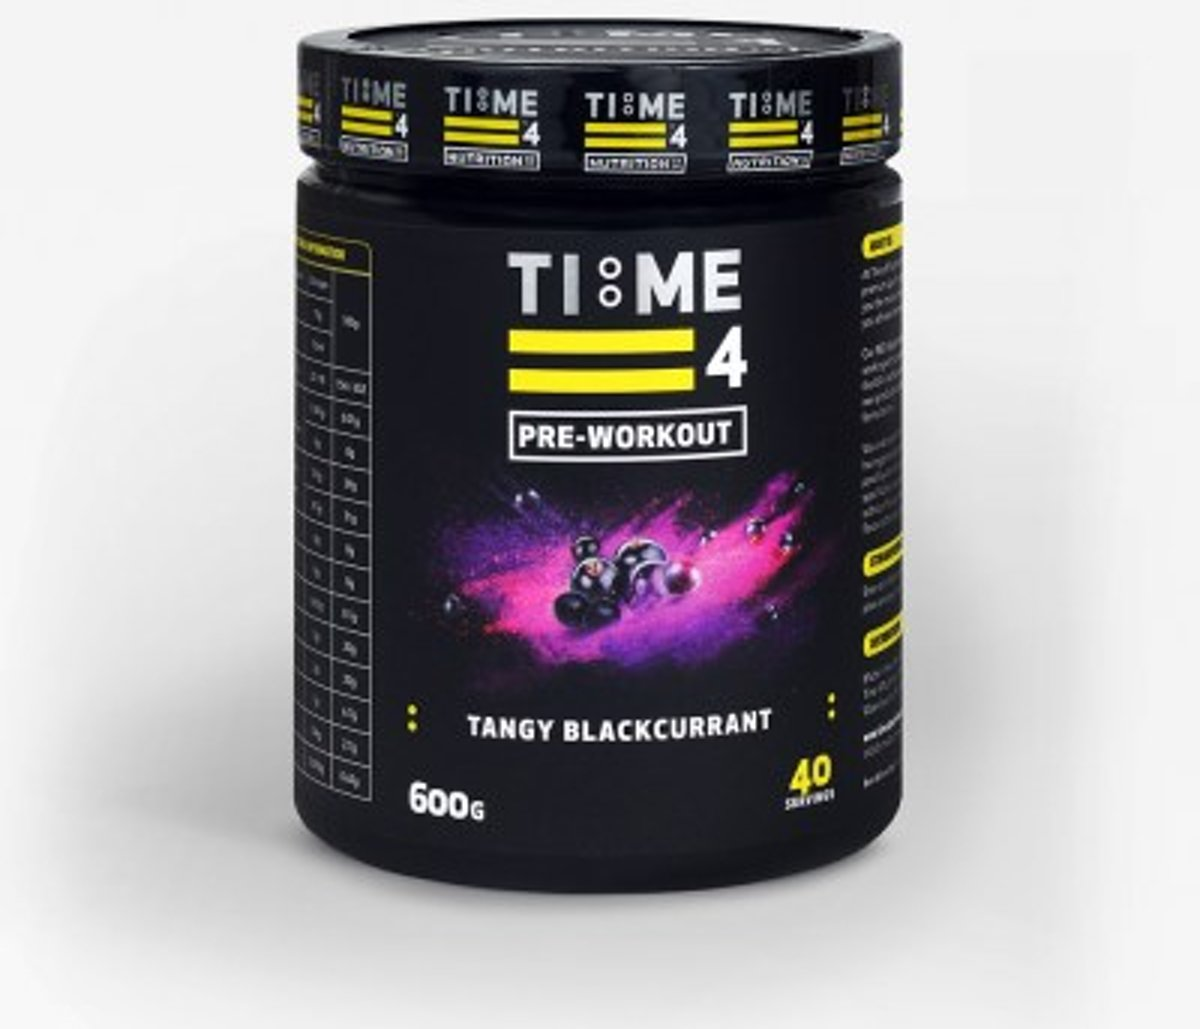 Time 4 Nutrition - Pre Workout - Tangy Blackcurrant - 600g - 40 servings kopen